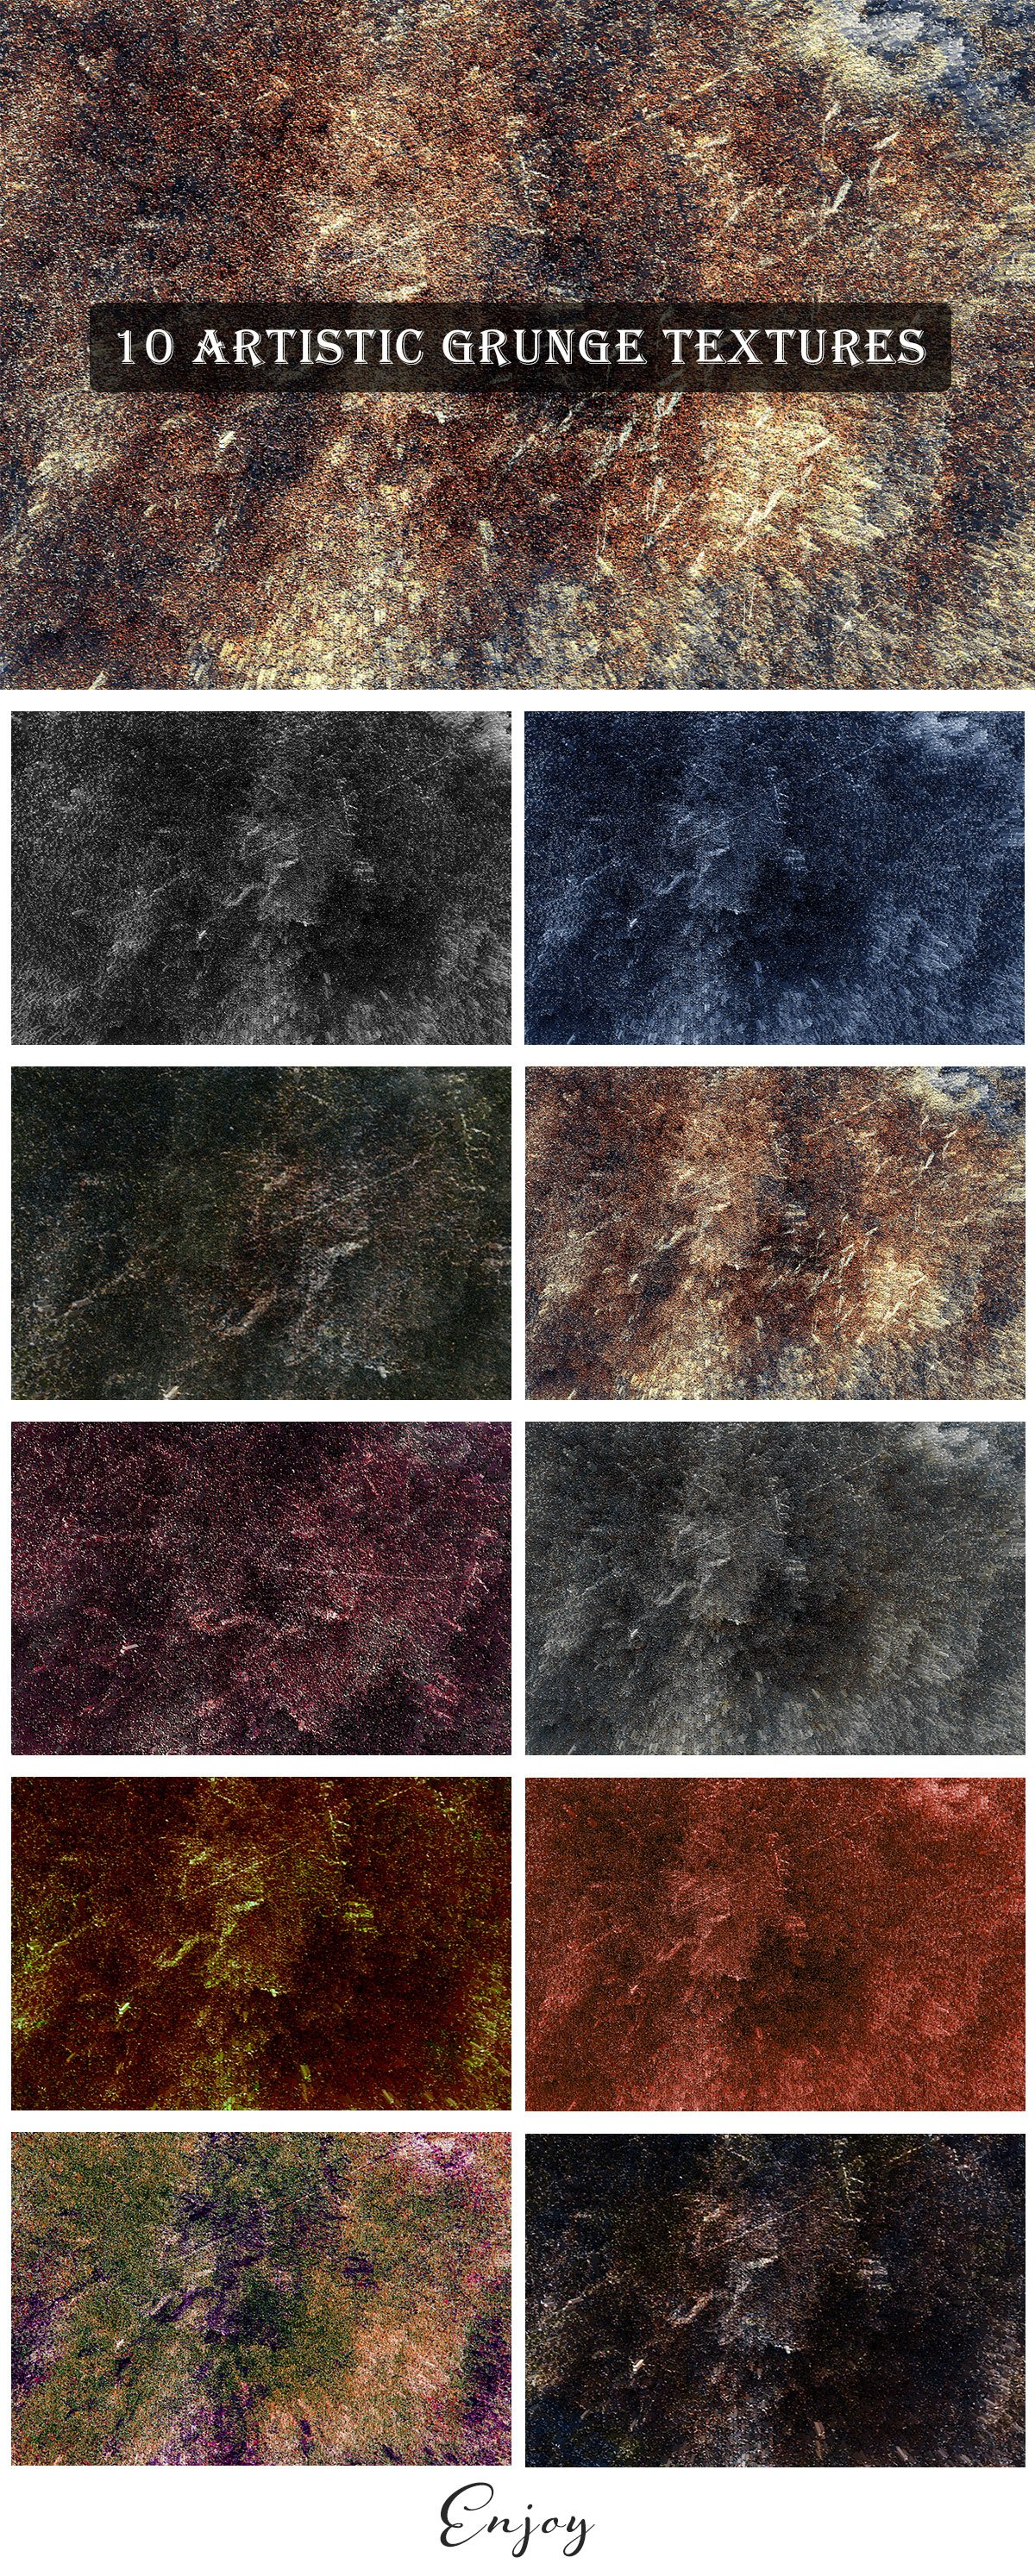 10 Free Creative Artistic Grunge Textures